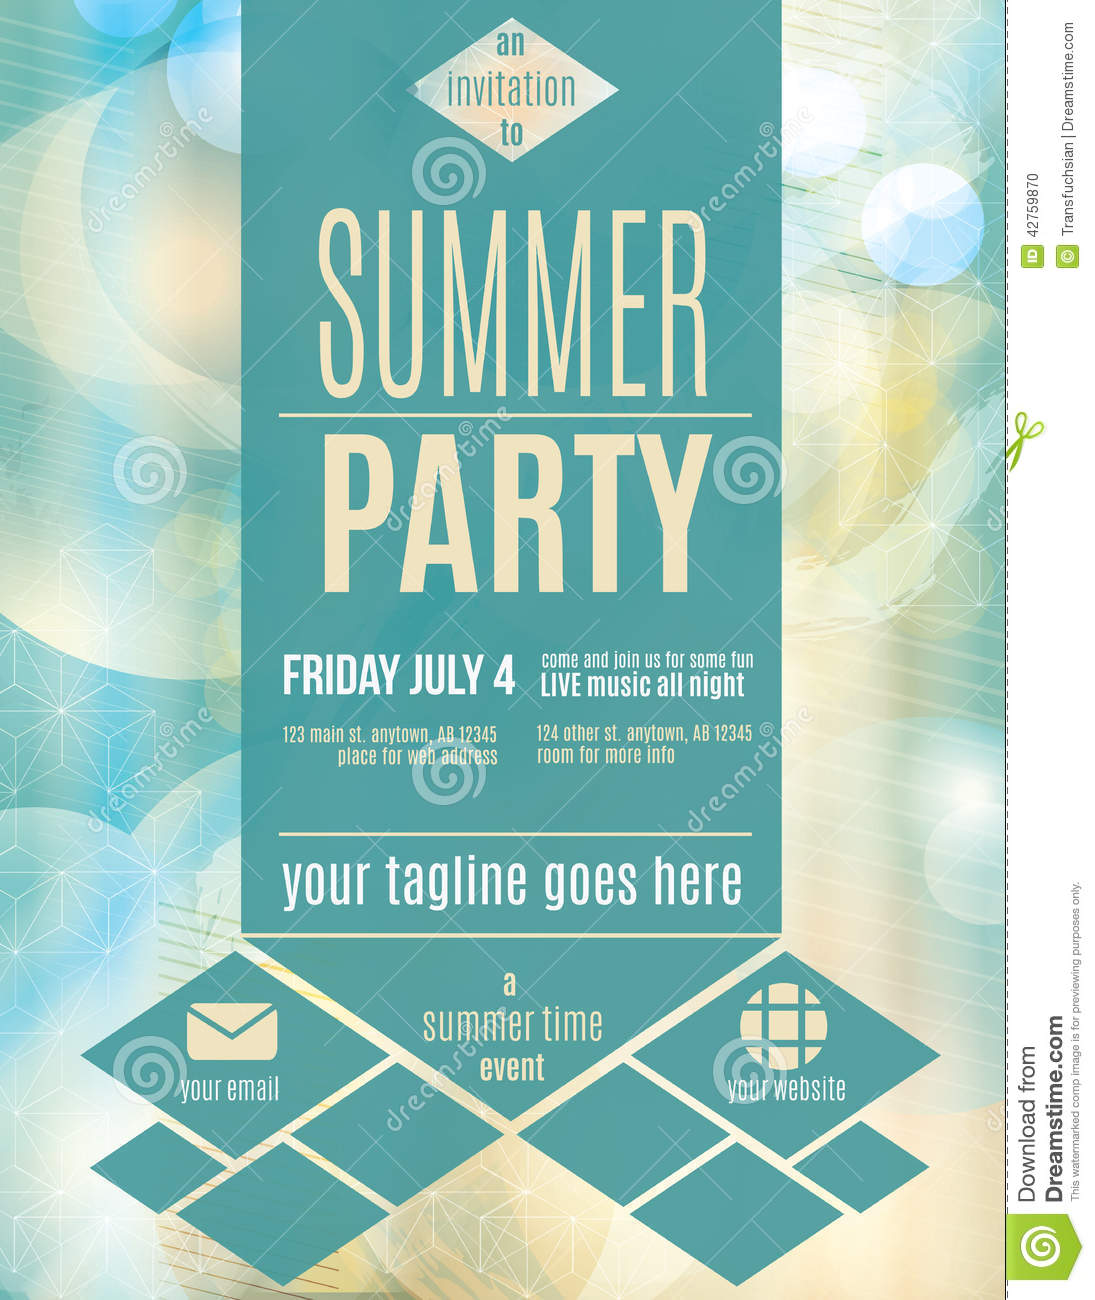 Modern Style Summer Party Flyer Template Stock Vector - Image ...